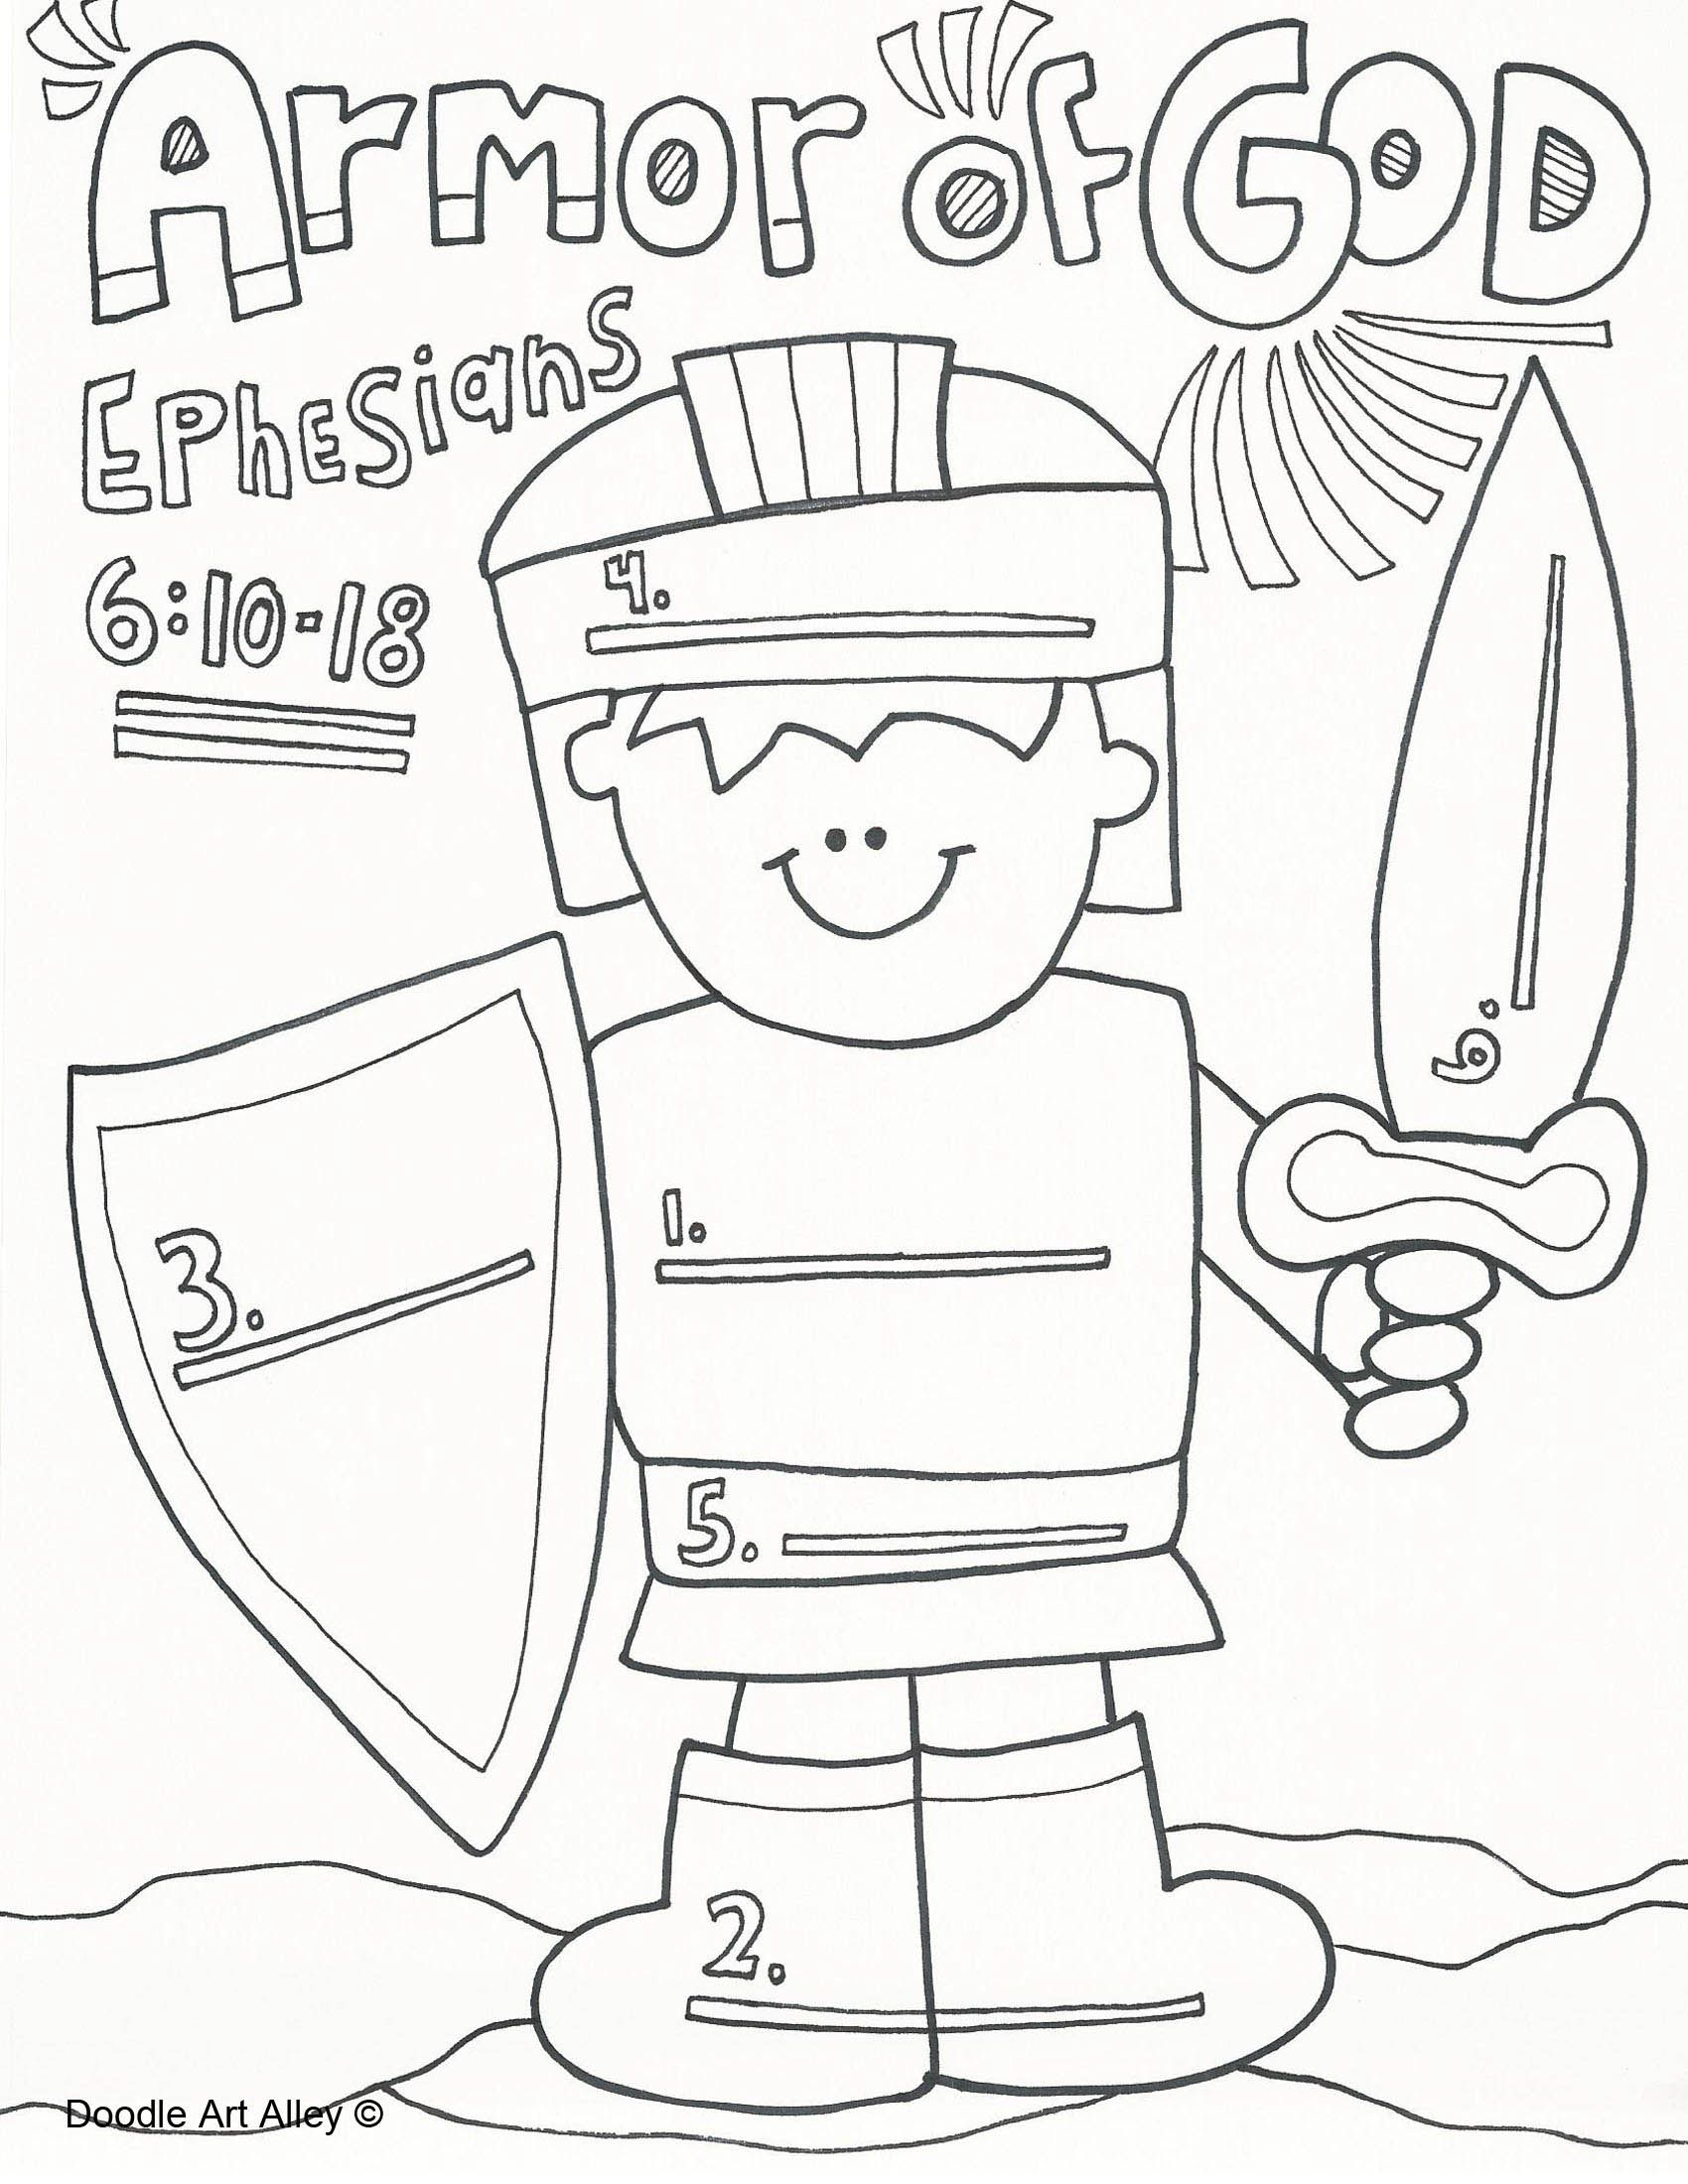 The Christmas Angel blog- teaching the armor of God! | The ...